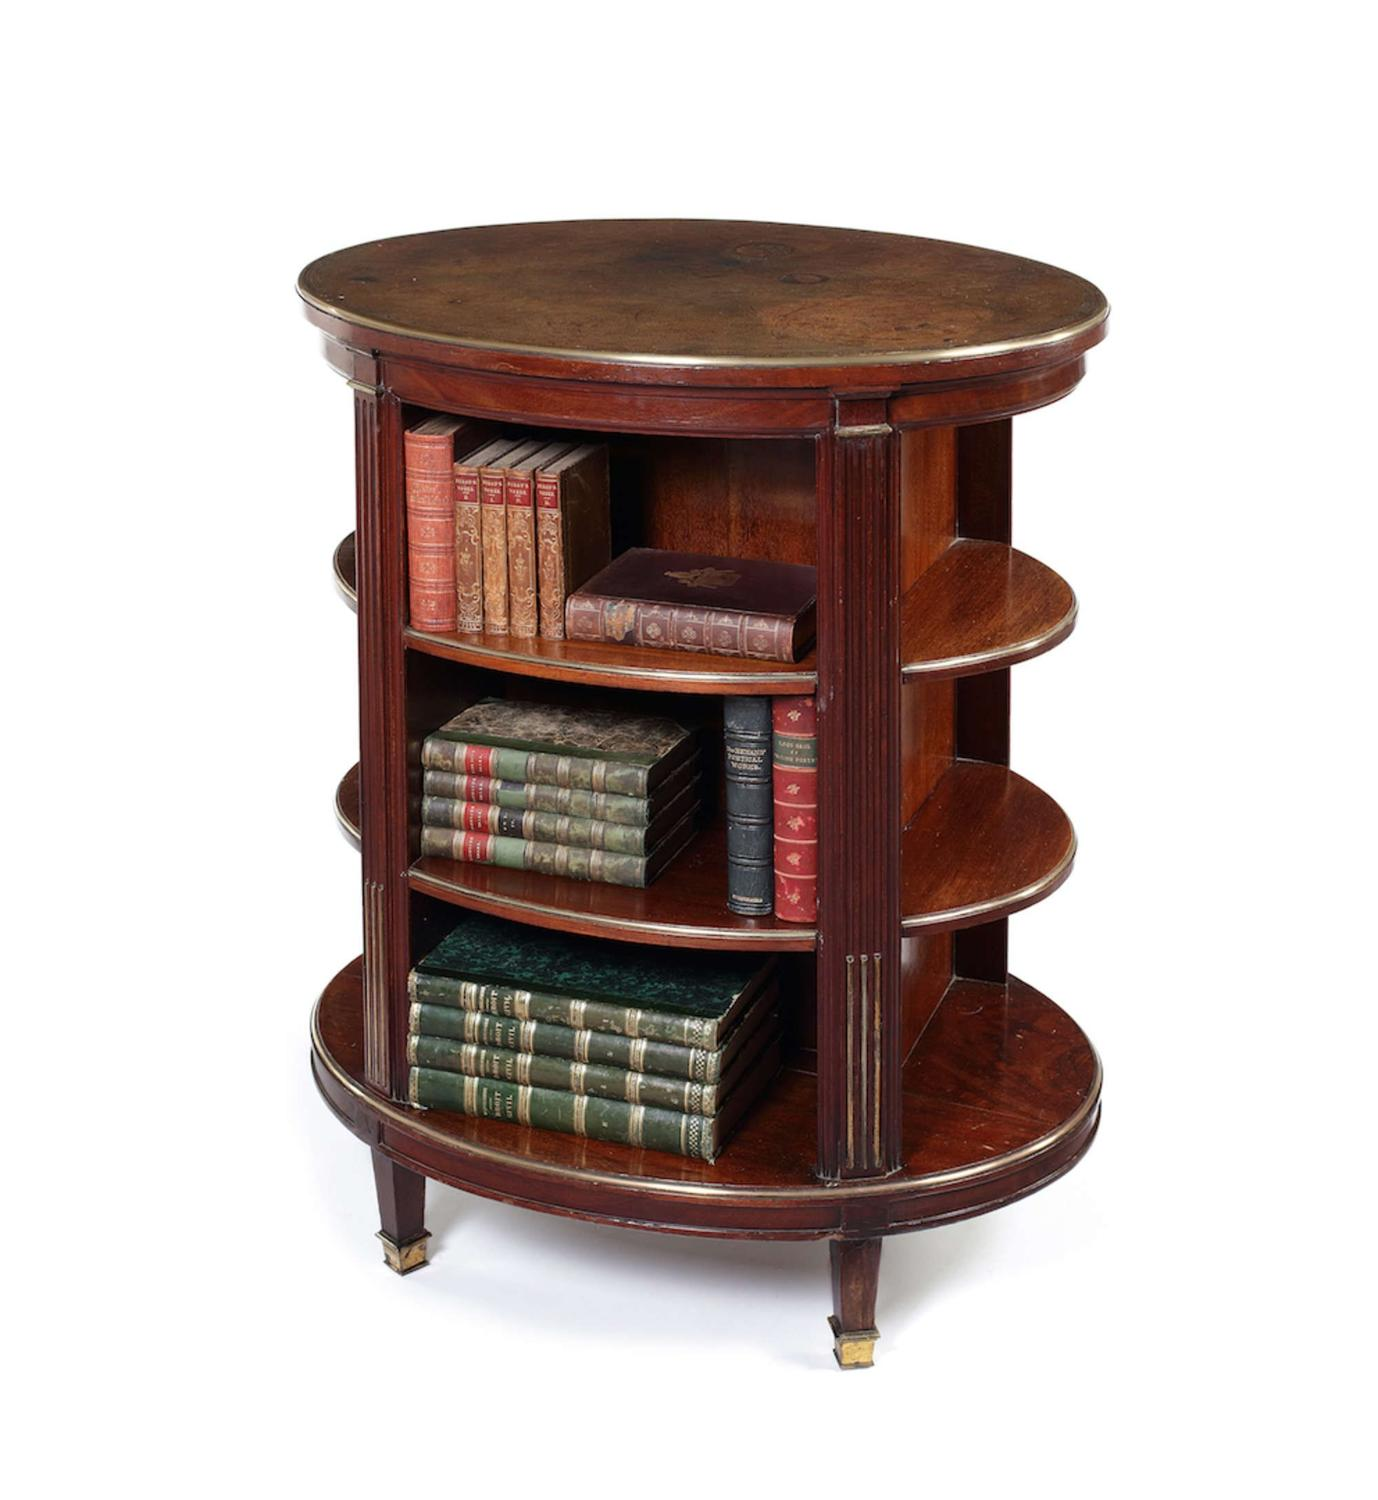 C19th mahogany freestanding oval bookcase